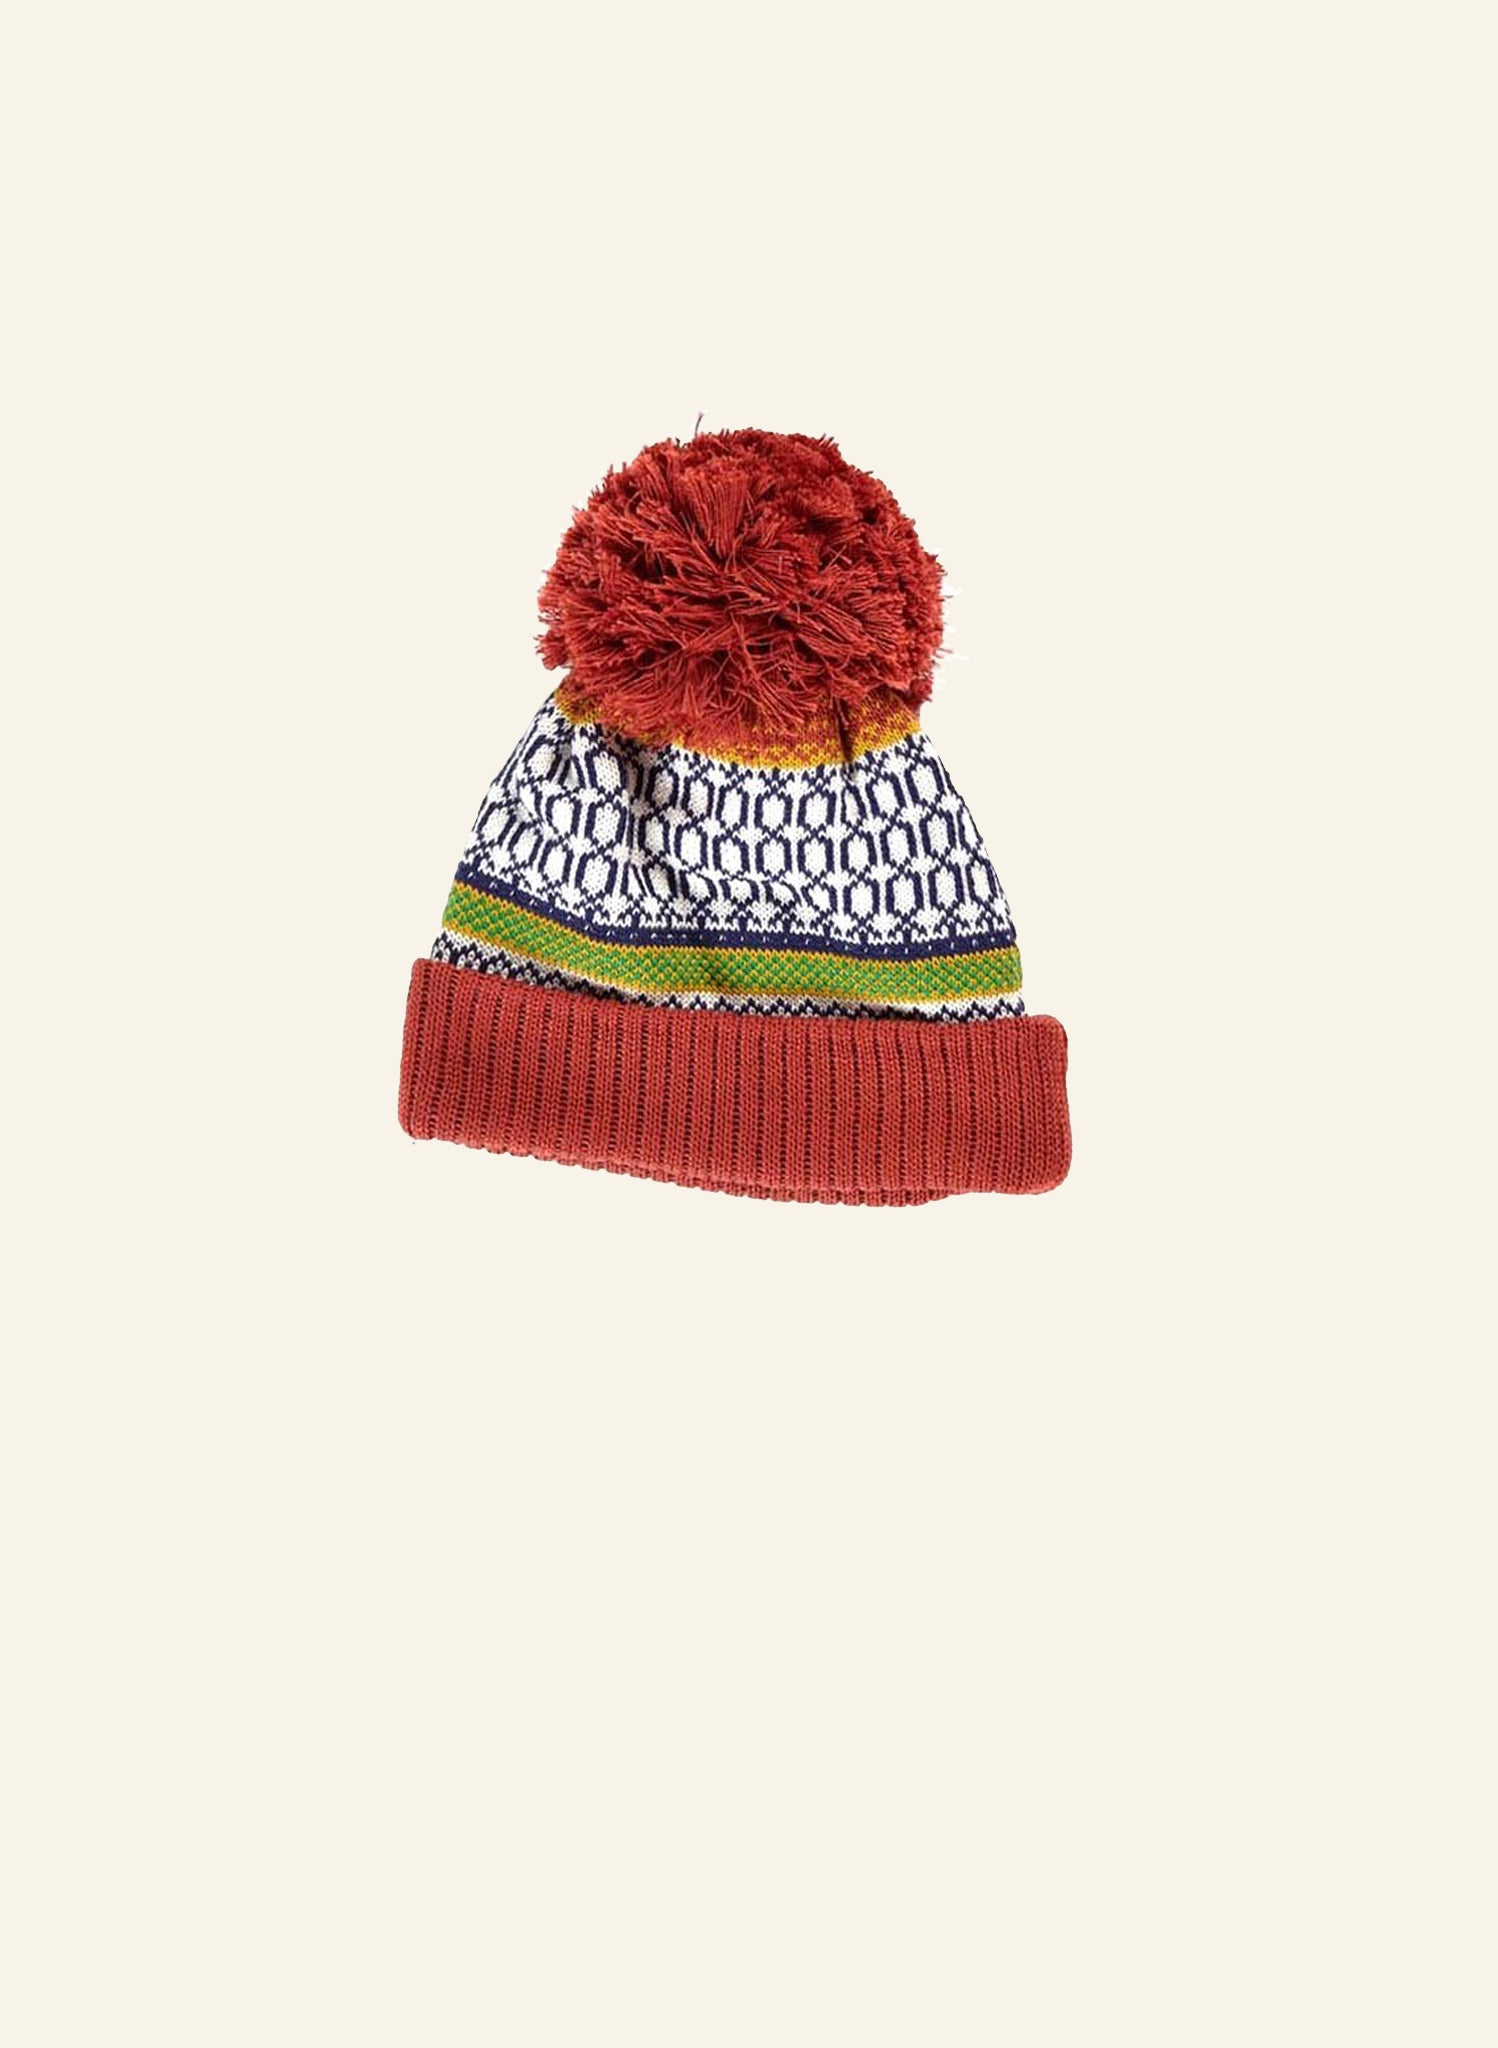 Children's Bobble Hat - Red Geometric Knit